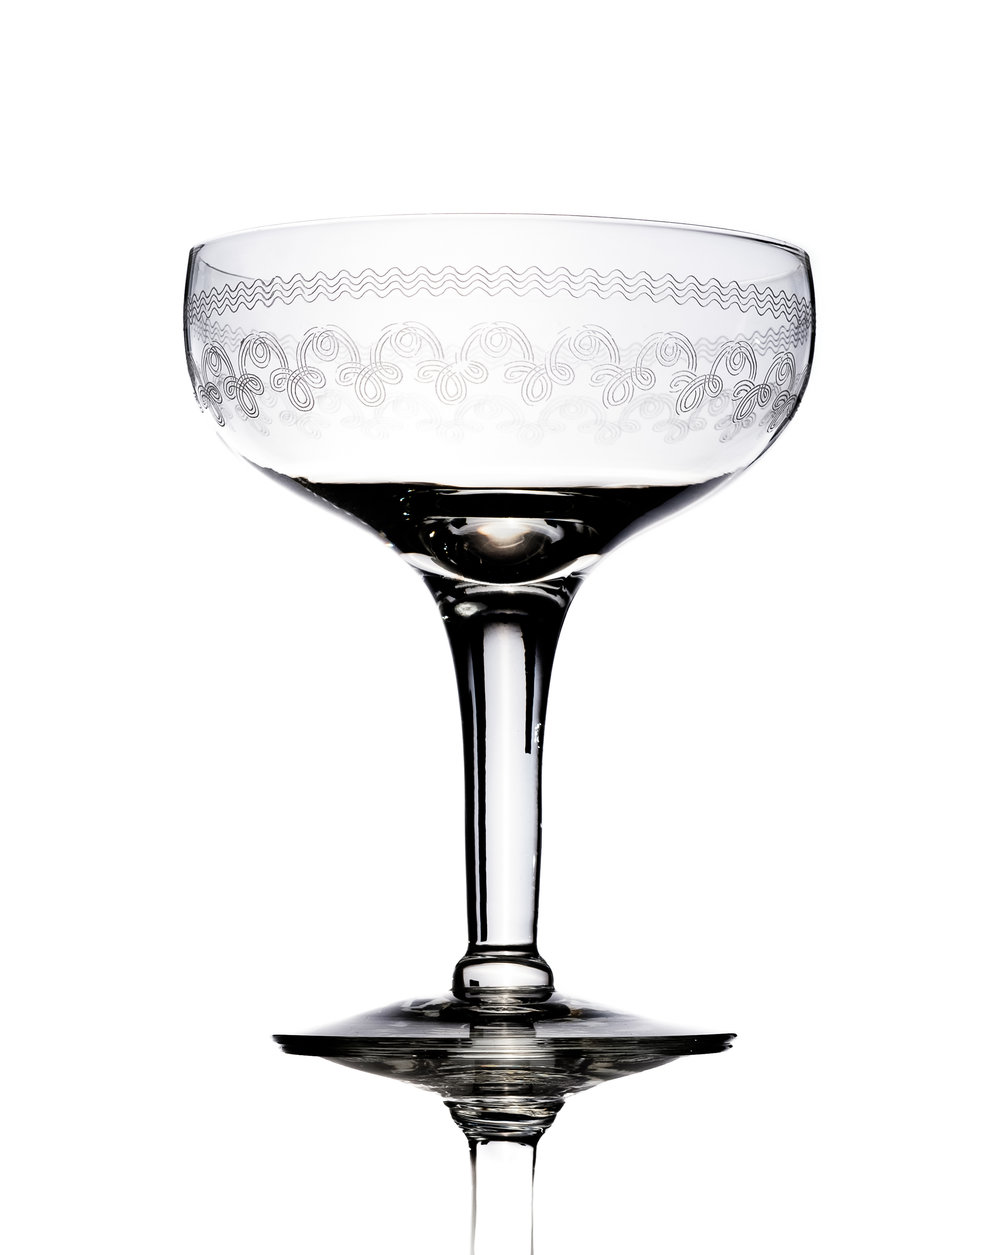 Glass Product Photography